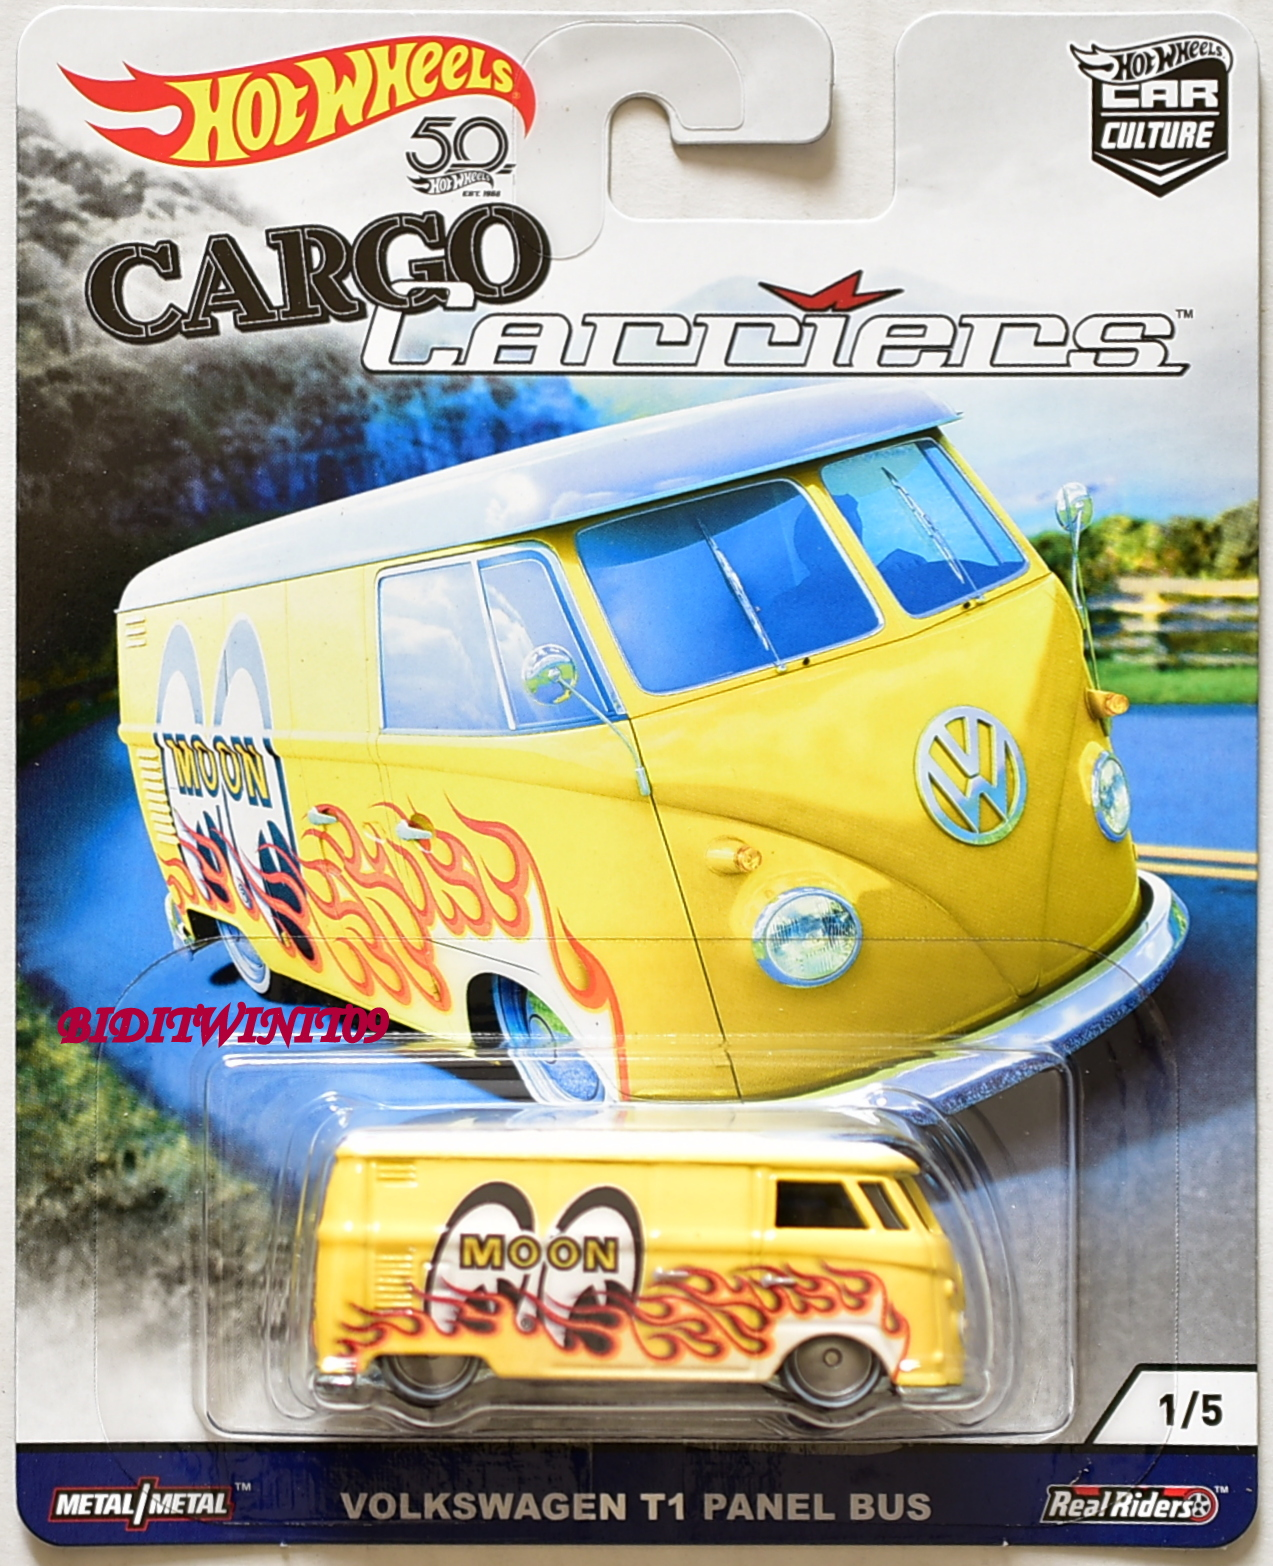 HOT WHEELS 2018 CAR CULTURE CARGO CARRIERS VOLKSWAGEN T1 PANEL BUS MOONEYES